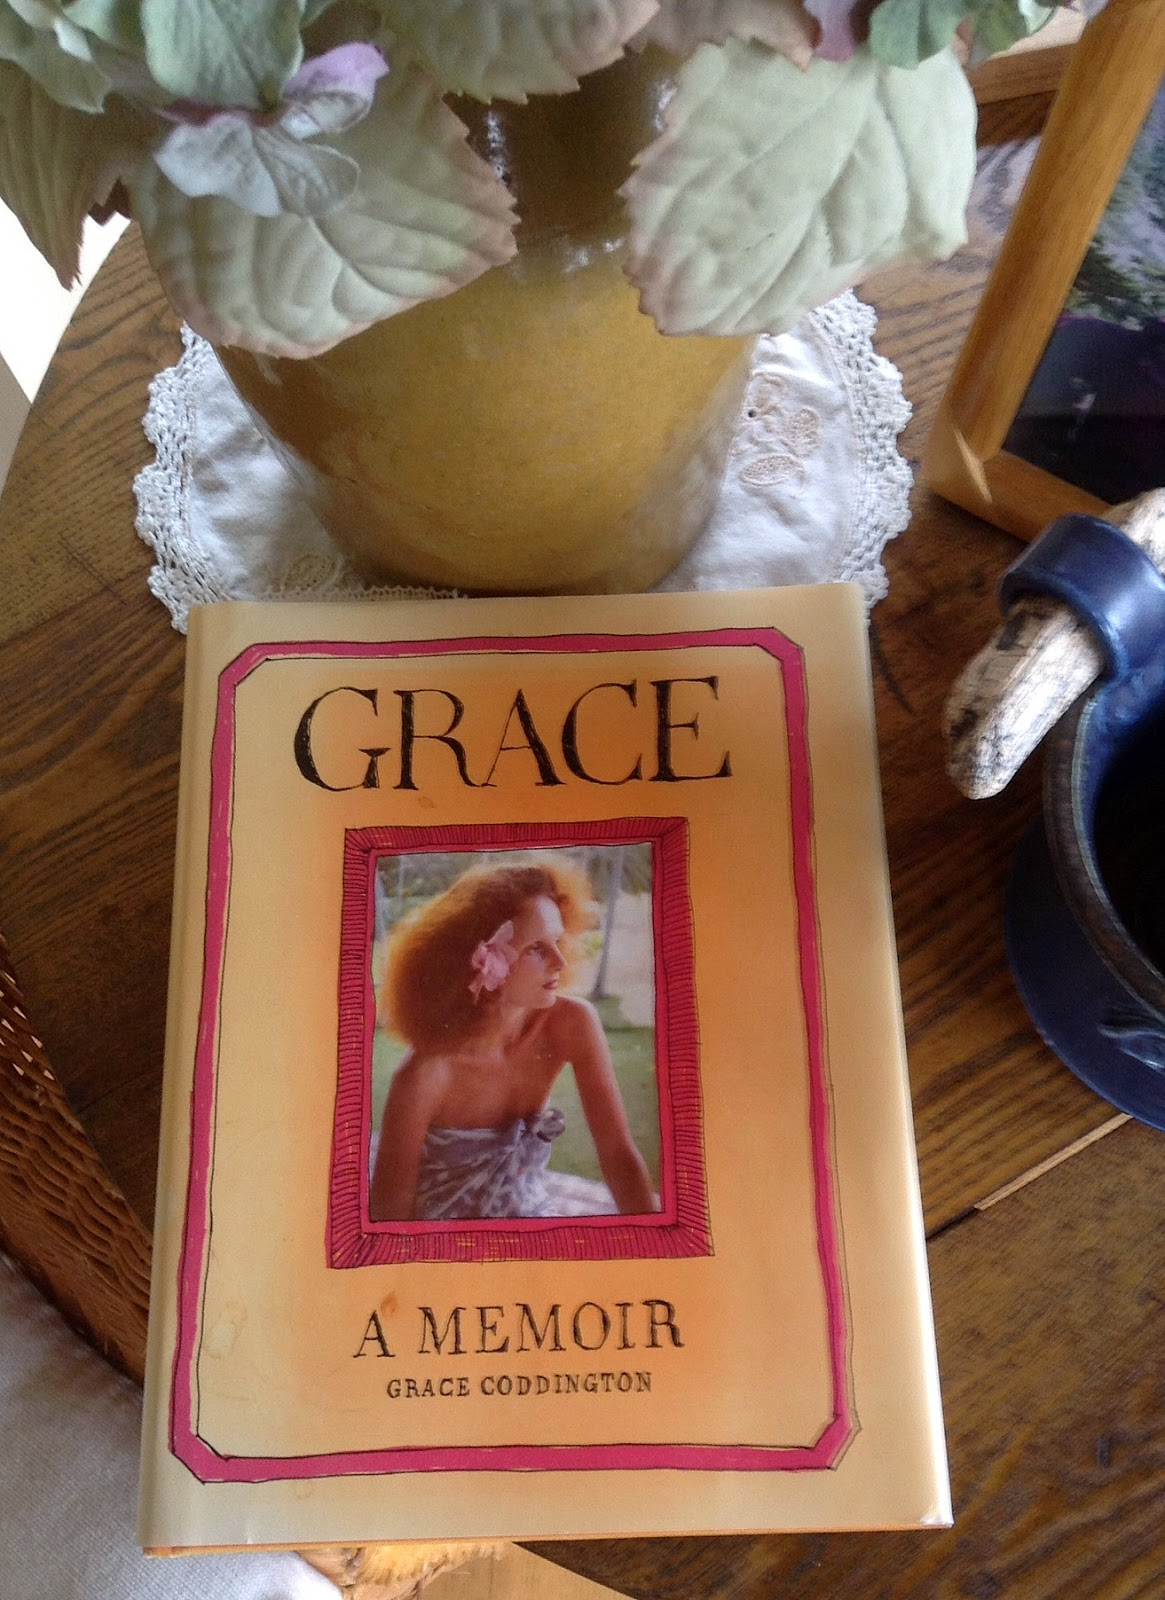 Grace Coddington's memoir Grace